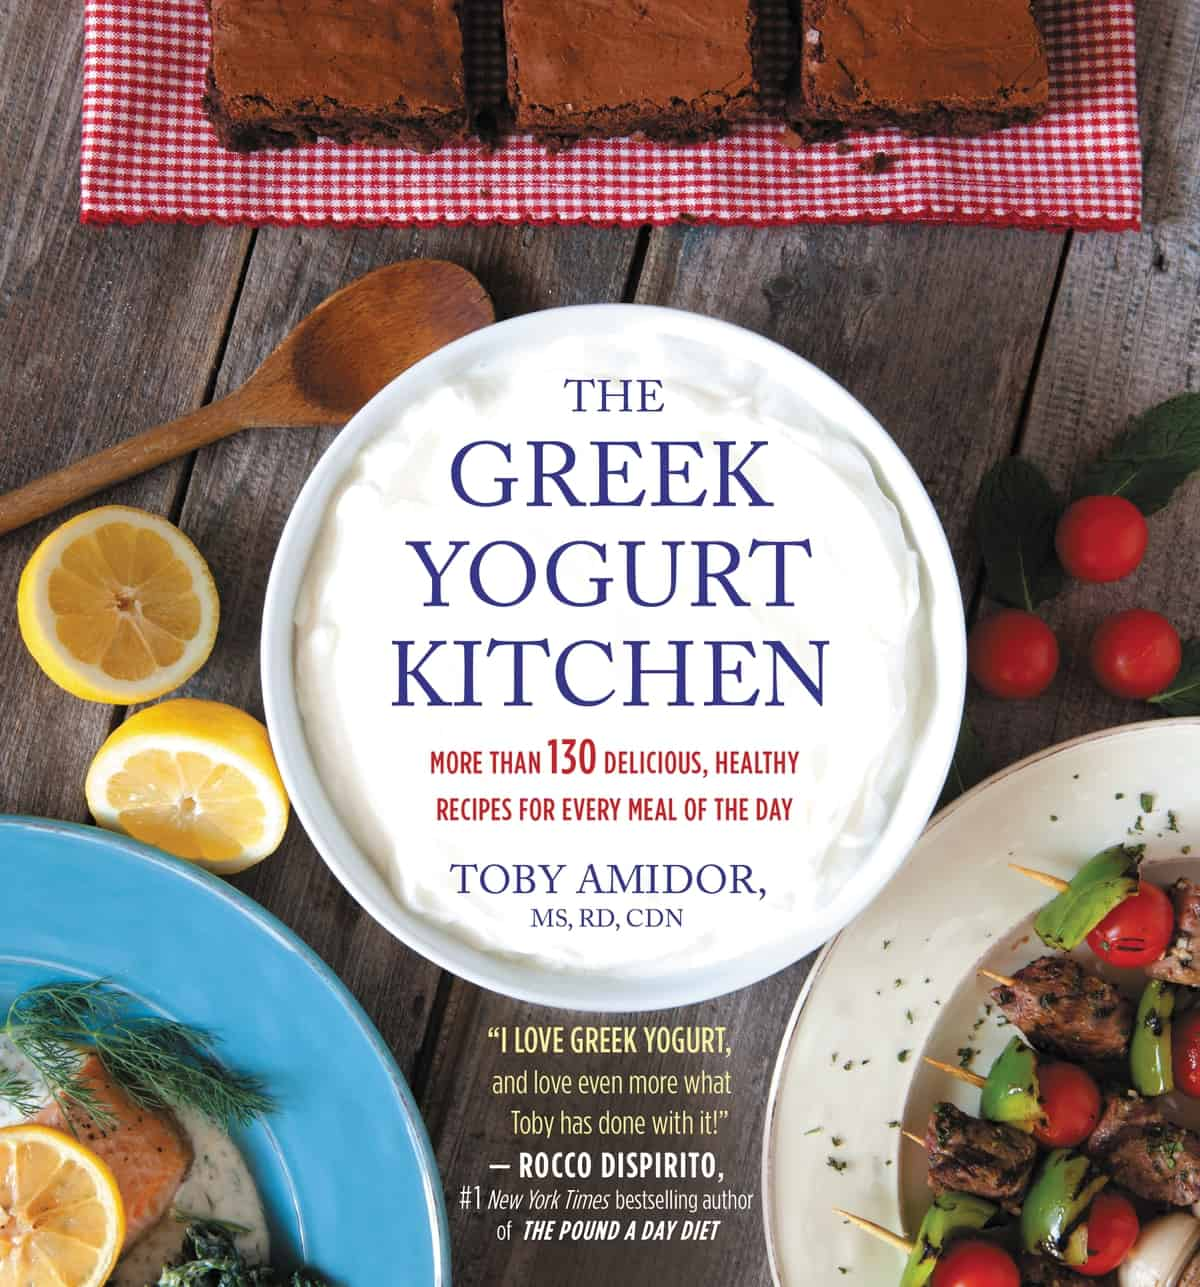 The Greek Yogurt Kitchen review from Living Well Kitchen